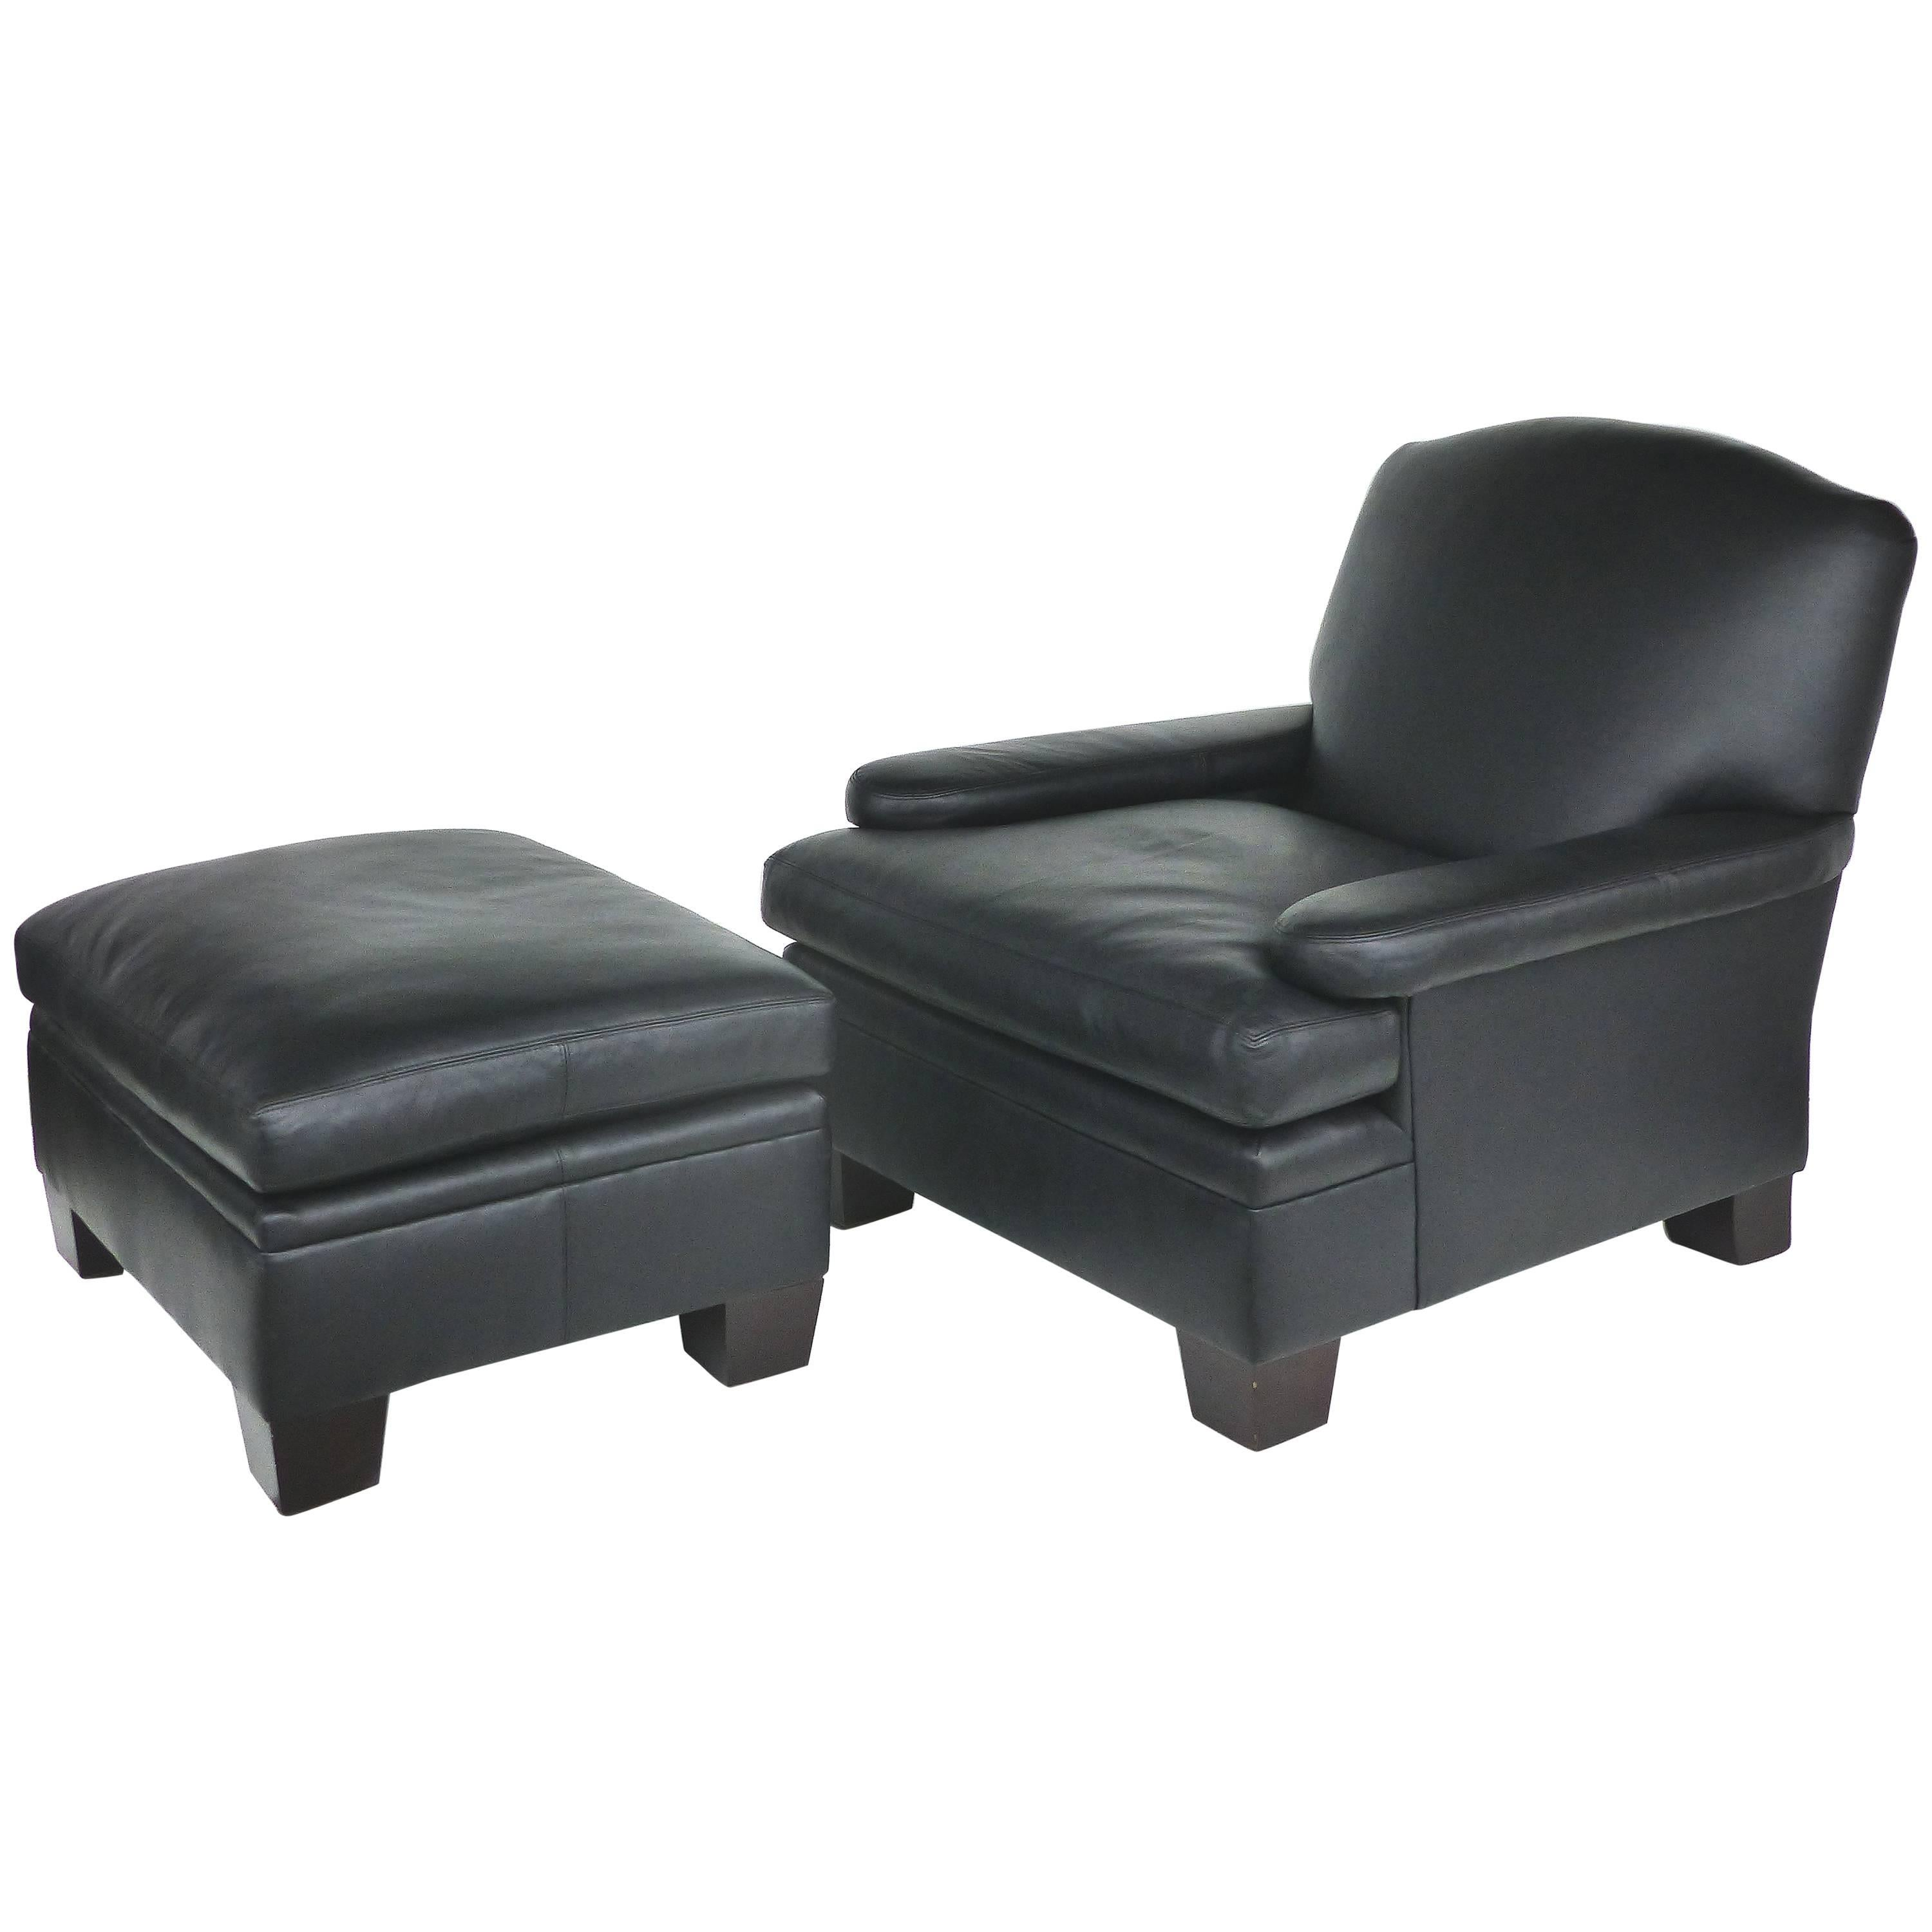 black leather club chair and ottoman office furniture conference room chairs ralph lauren london with matching for sale